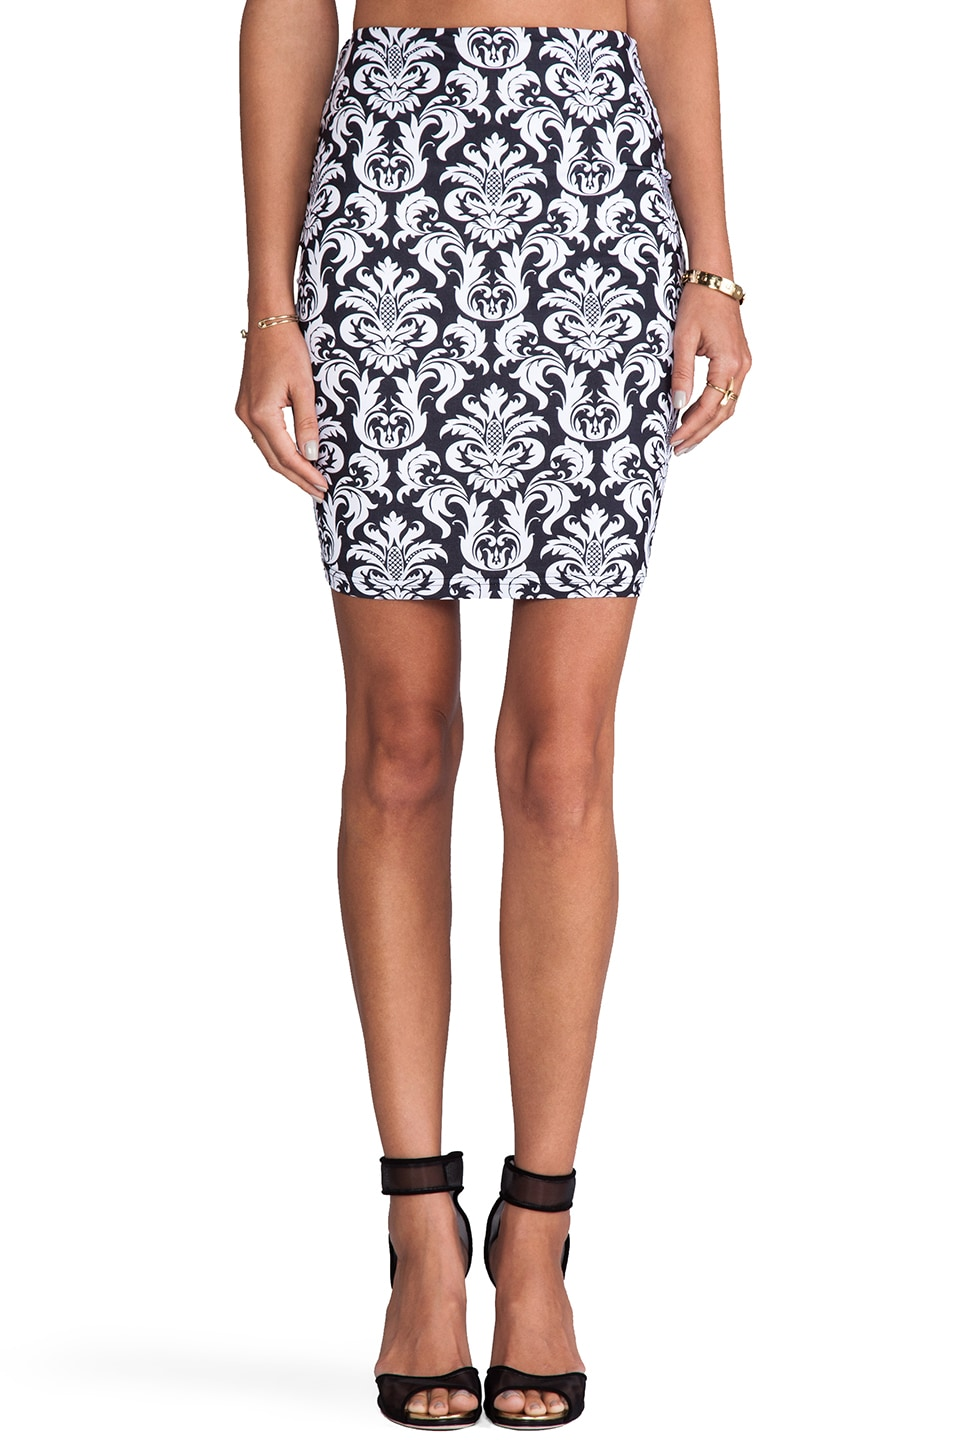 Nookie Baroque Pencil Skirt in Black